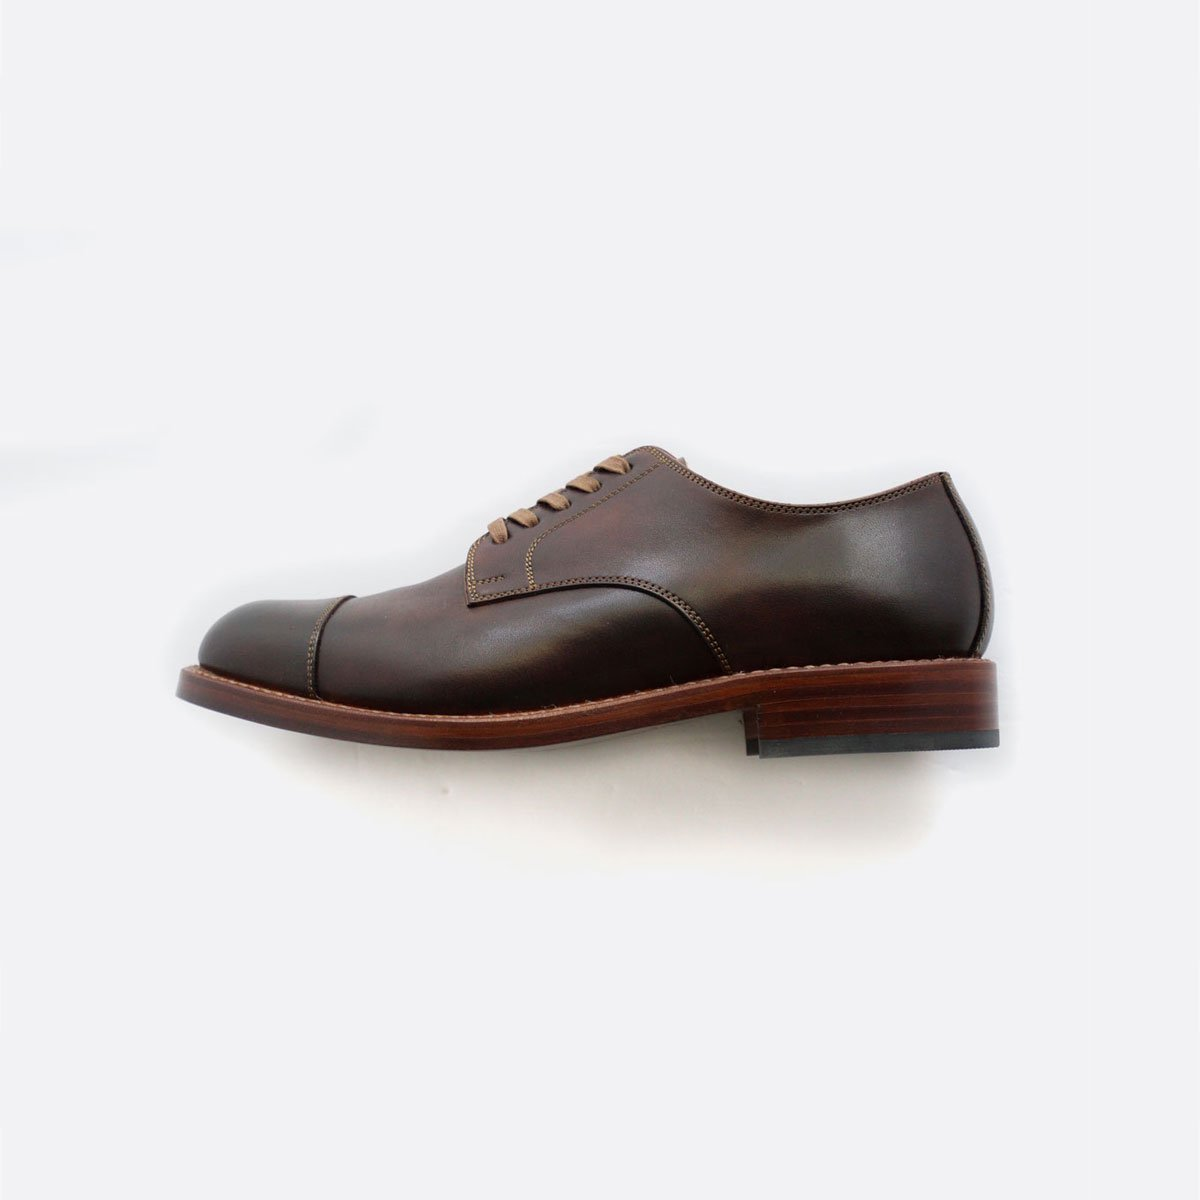 LEATHER&SILVER MOTO STRAIGHT TIP OXFORD SHOES #2900 (BROWN)